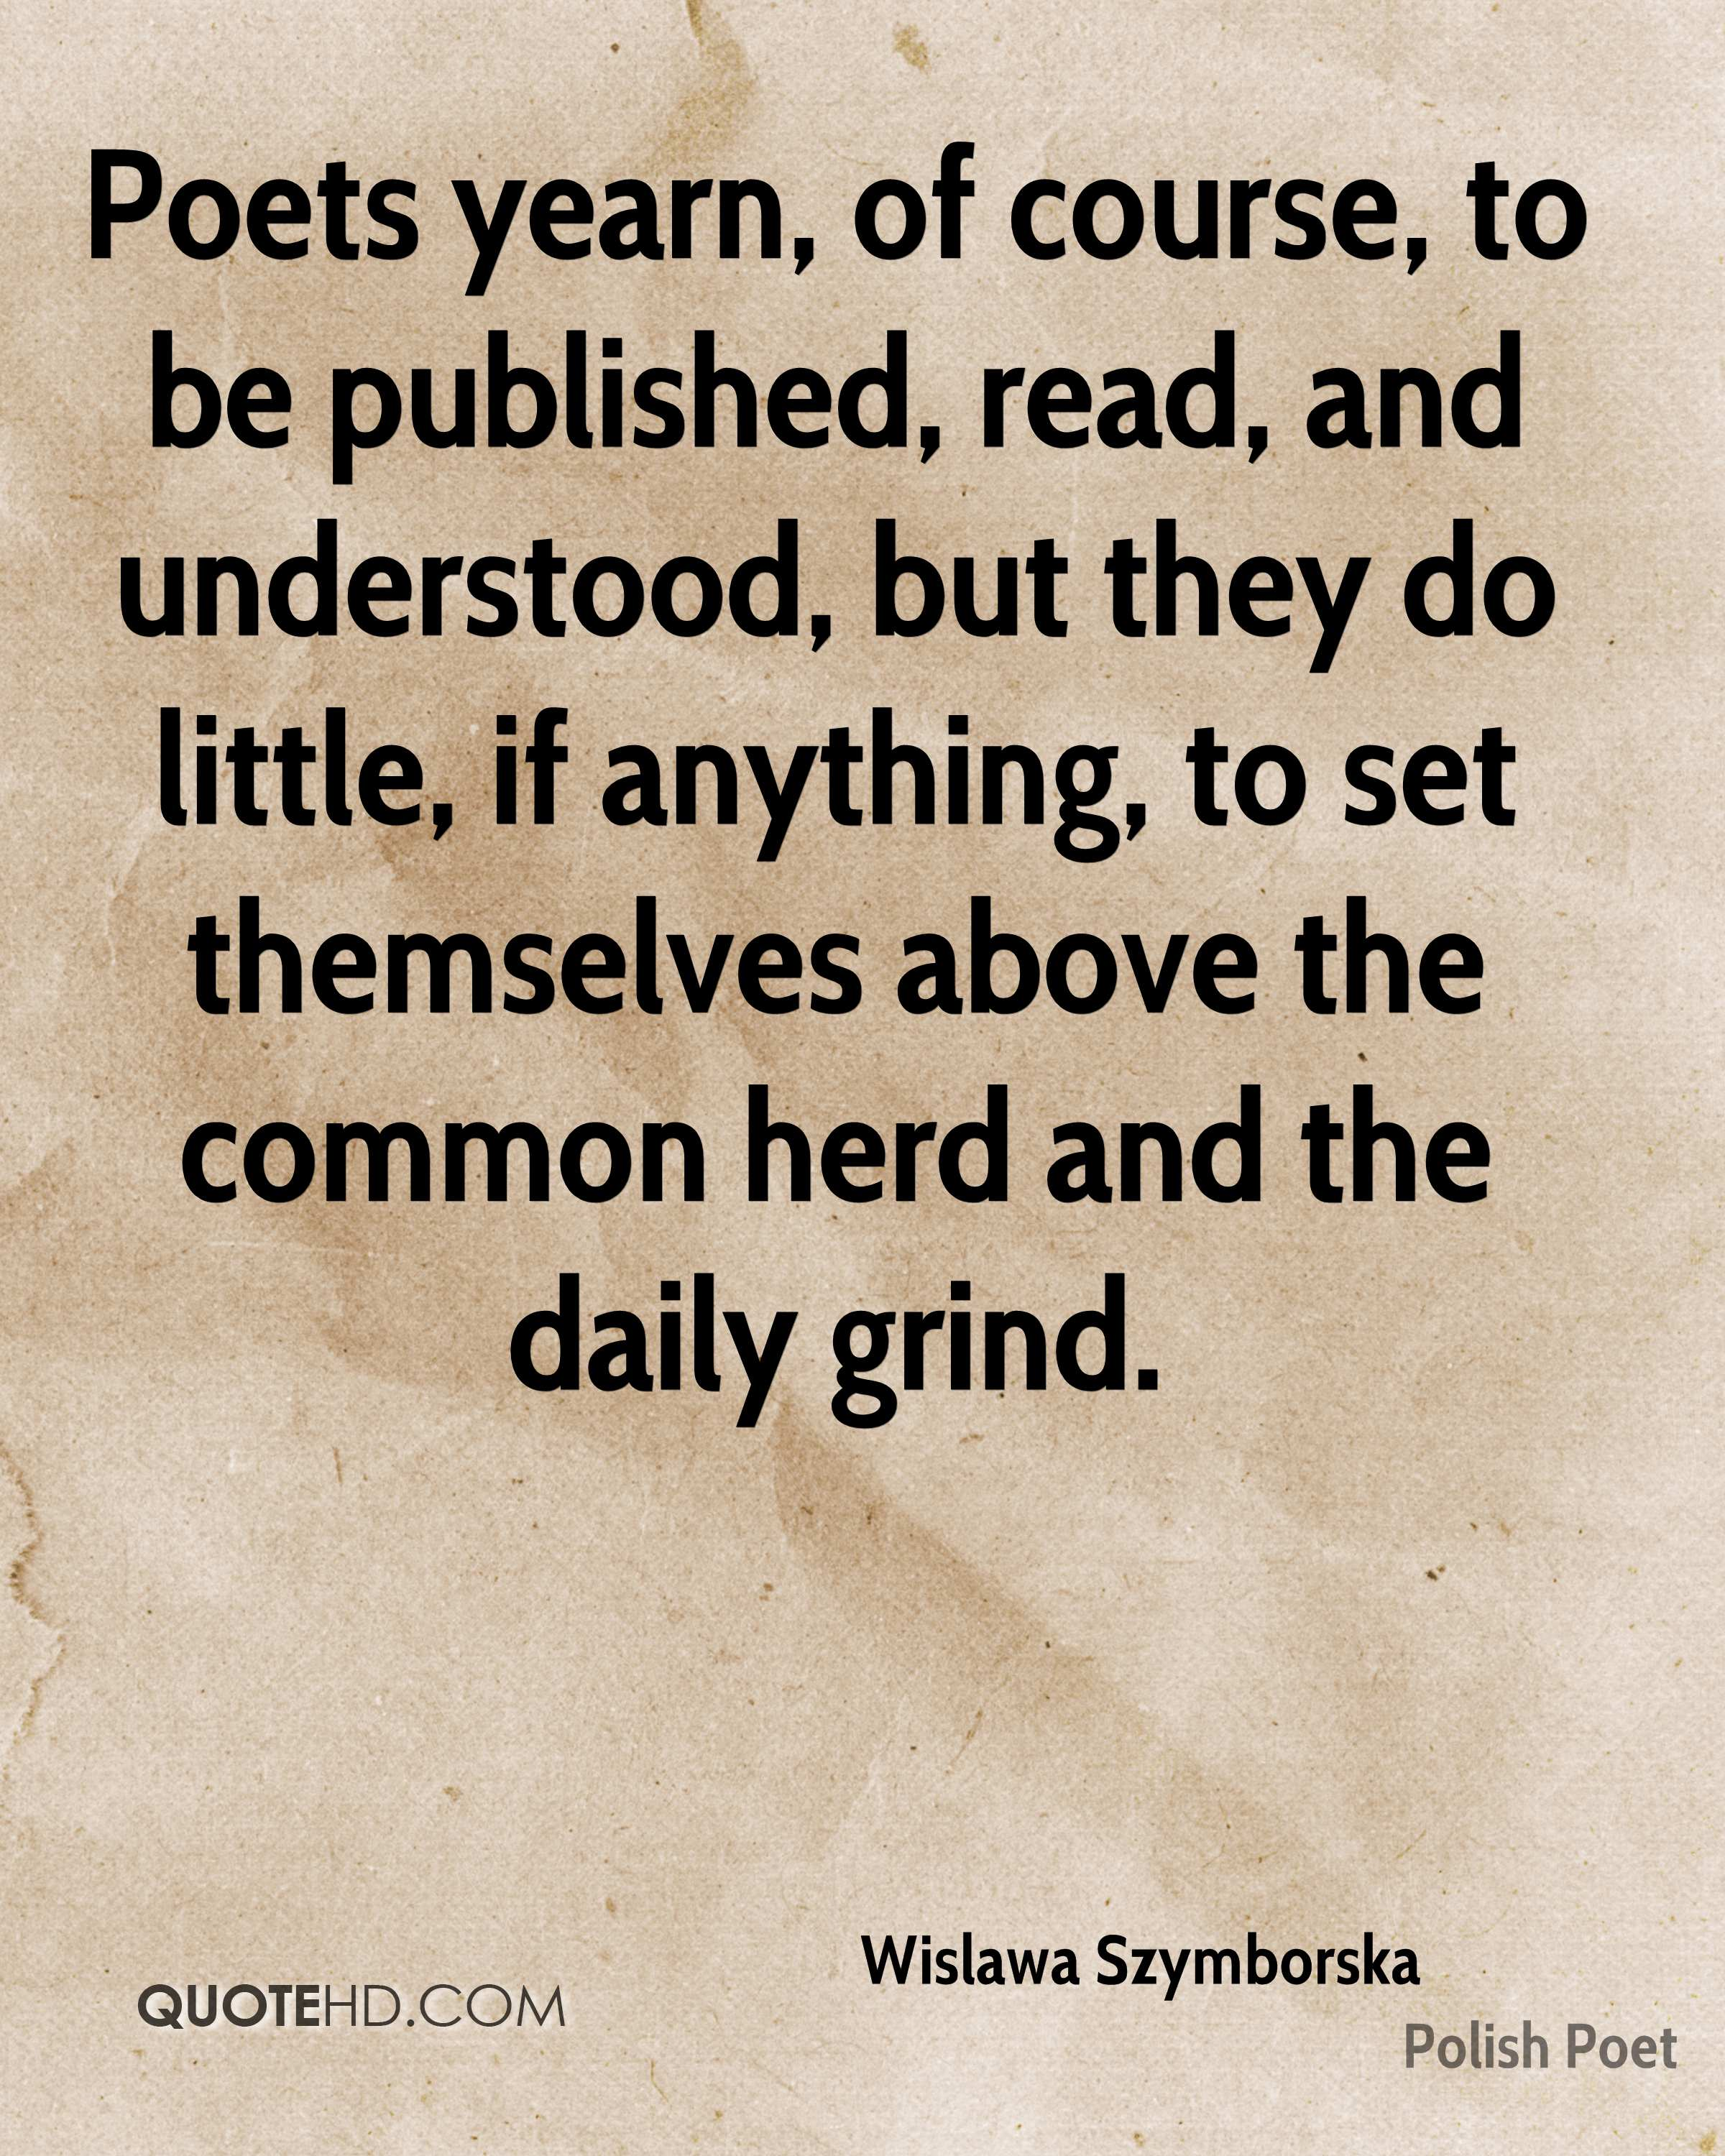 Poets yearn, of course, to be published, read, and understood, but they do little, if anything, to set themselves above the common herd and the daily grind.